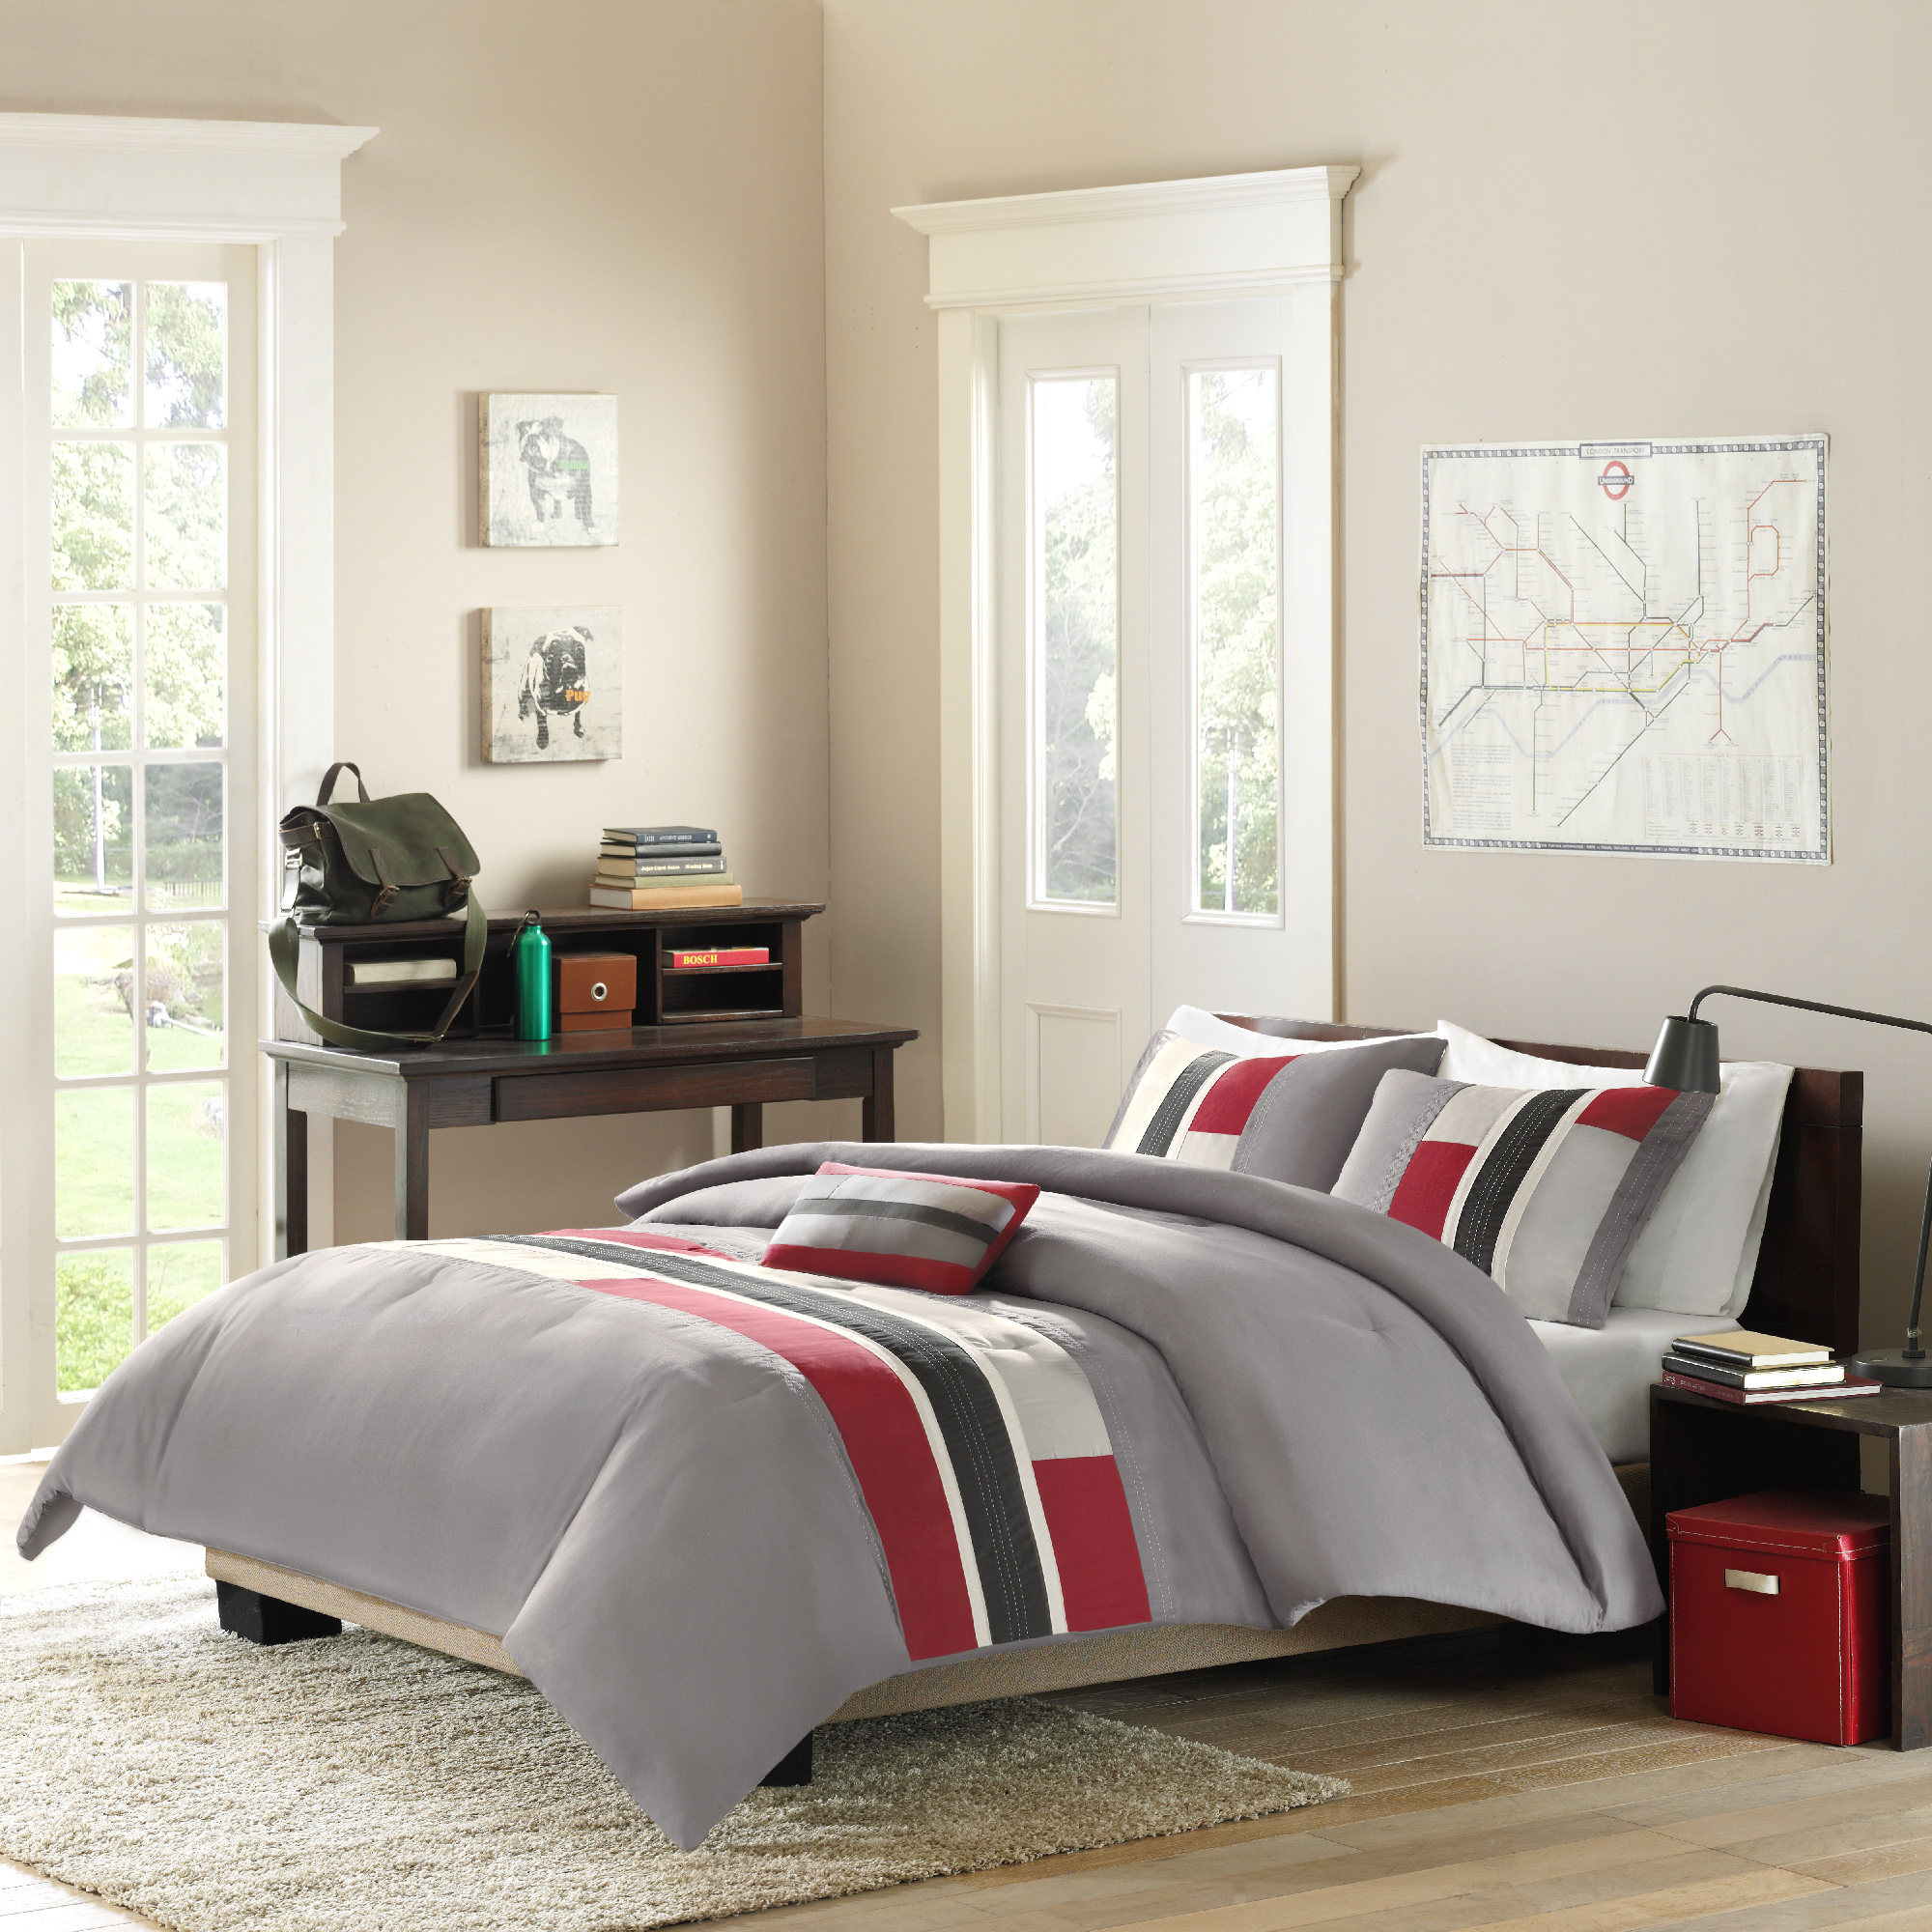 Home Essence Teen Maverick Ultra Soft Comforter Bedding Set